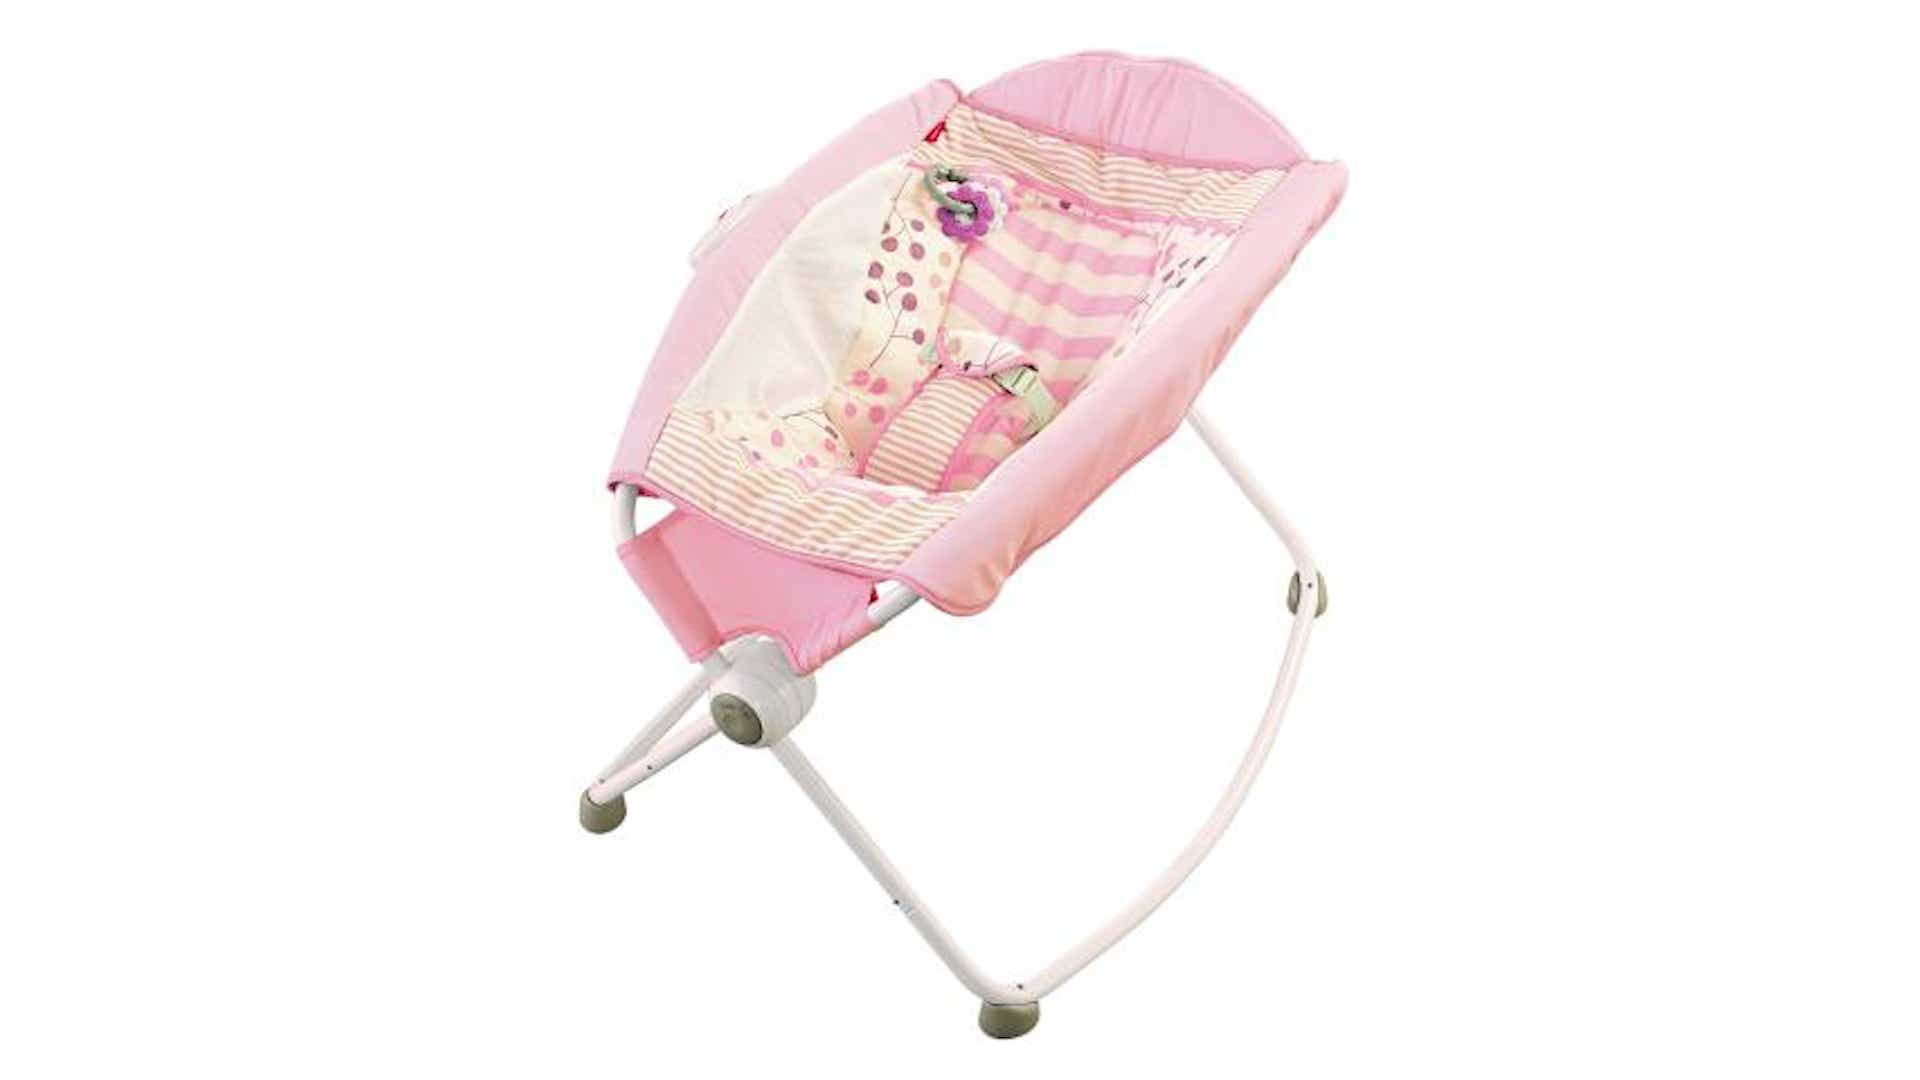 Fisher Price Issues Official Recall After Safety Alert Infant Deaths